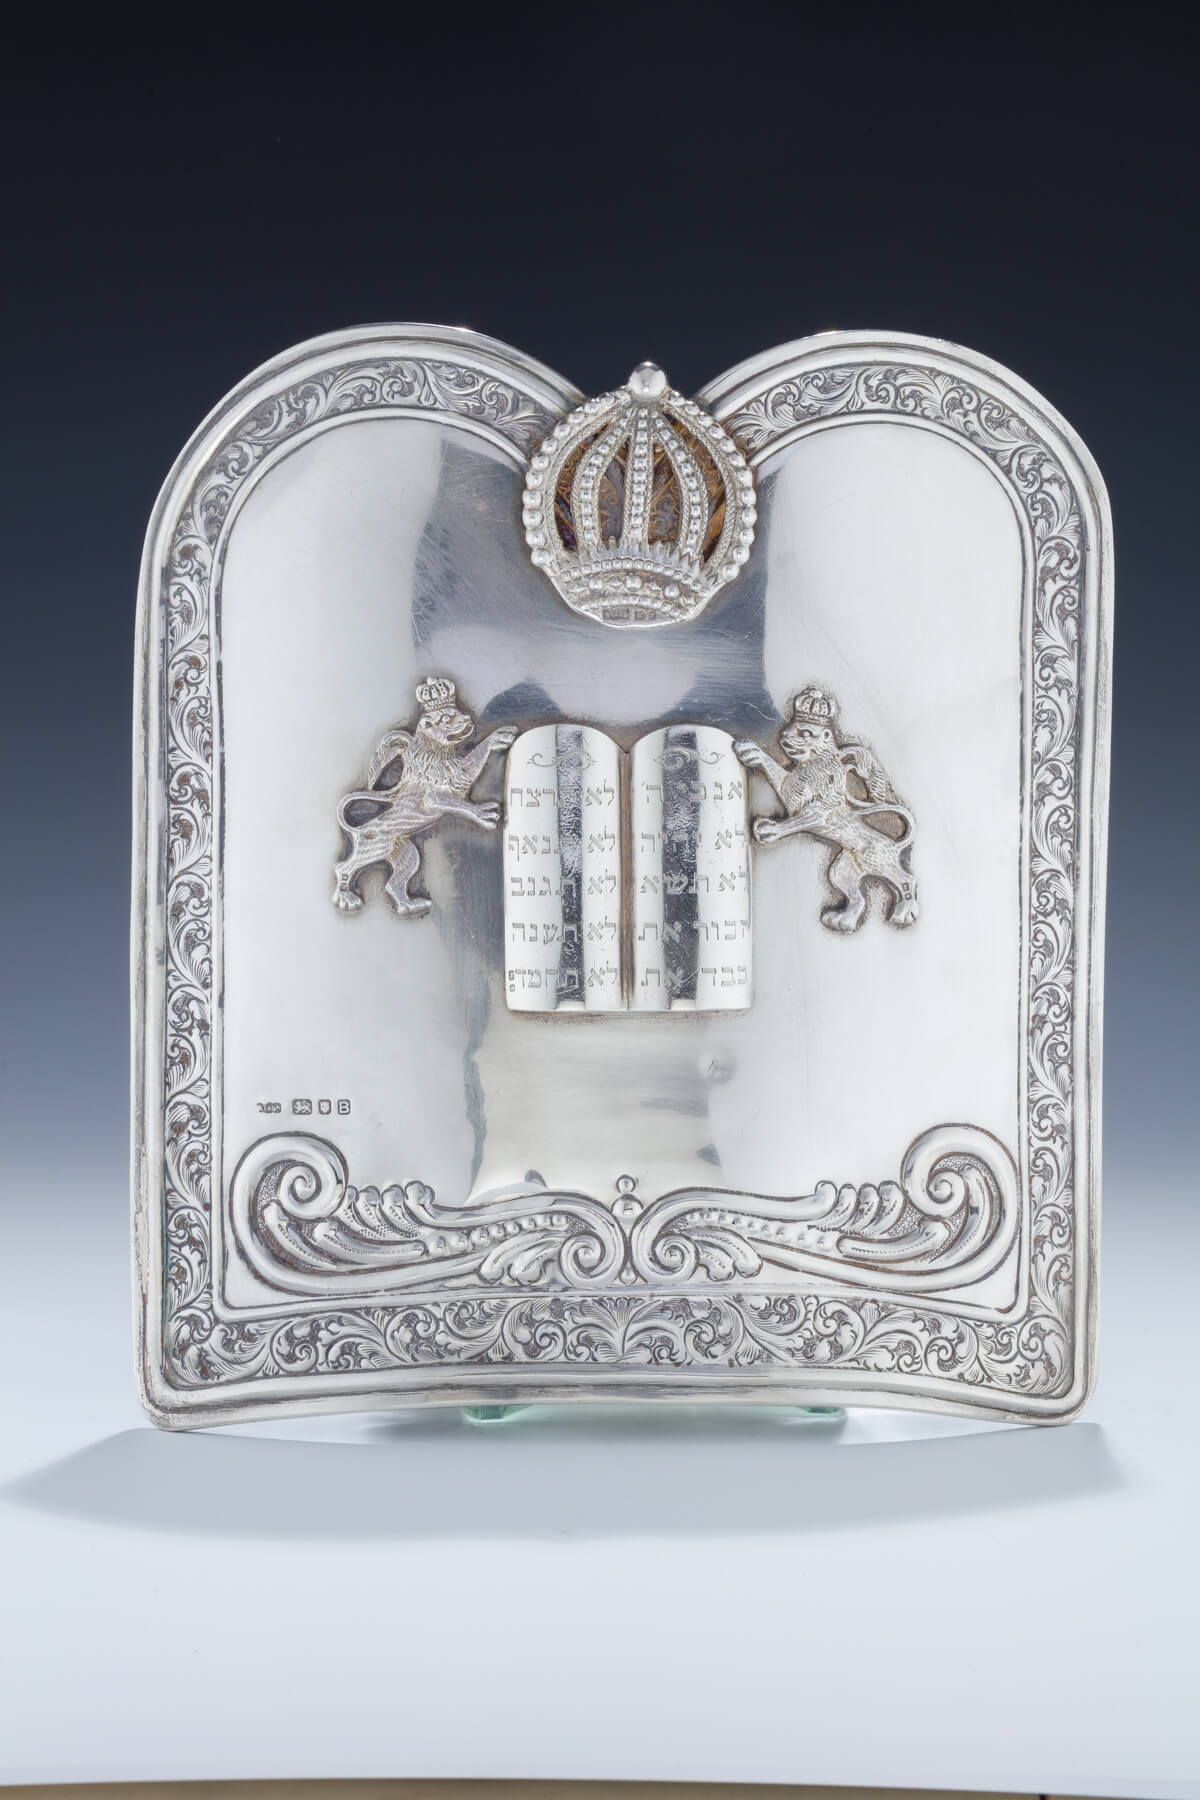 115. A Silver Torah Shield by Aron Teitelbaum and Son